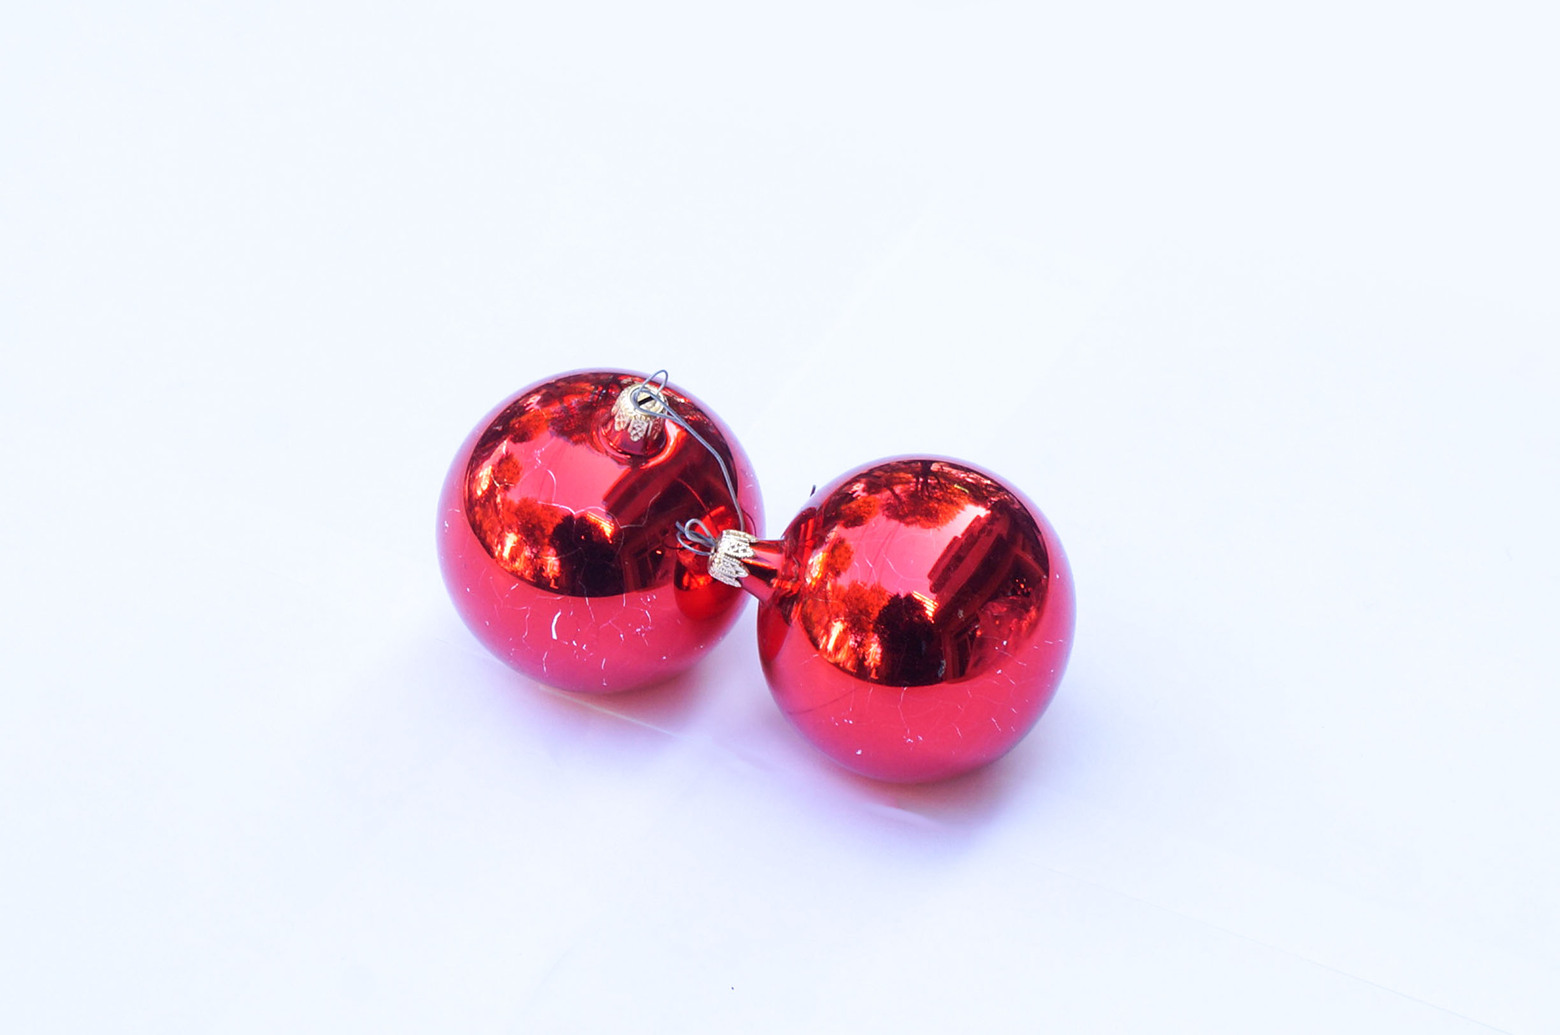 Vintage Blown Glass Christmas Ball Ornament/ヴィンテージ クリスマス オーナメント 吹きガラス ボーVintage Blown Glass Christmas Ball Ornament/ヴィンテージ クリスマス オーナメント 吹きガラス ボール レトロ 10個セット 1ル レトロ 10個セット 1